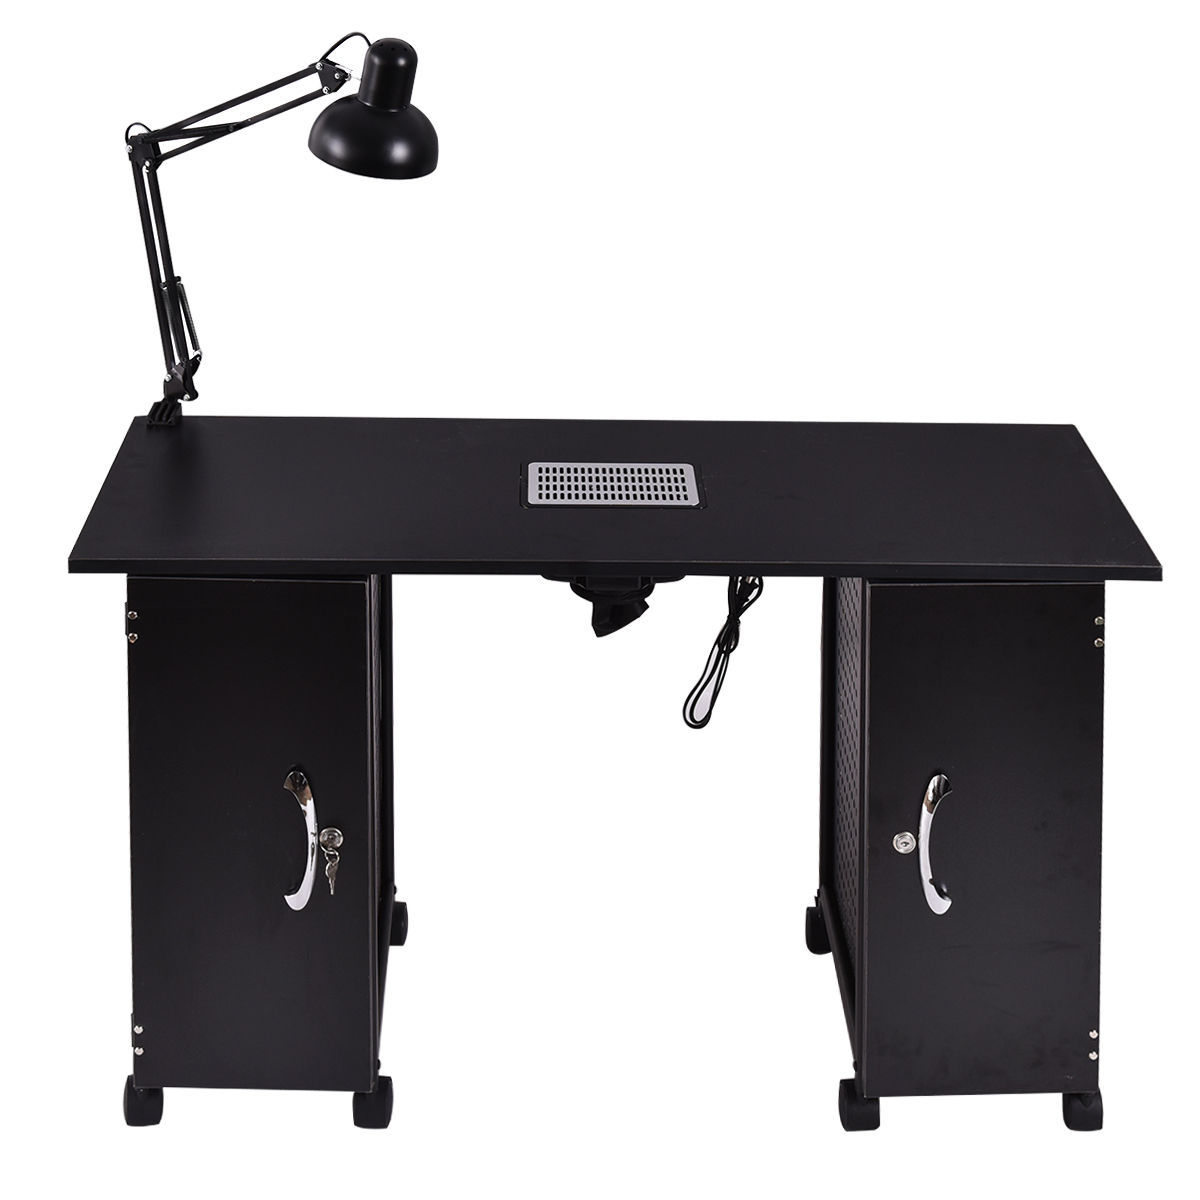 giantex nail table manicure station black steel frame beauty spa salon furniture with storage. Black Bedroom Furniture Sets. Home Design Ideas